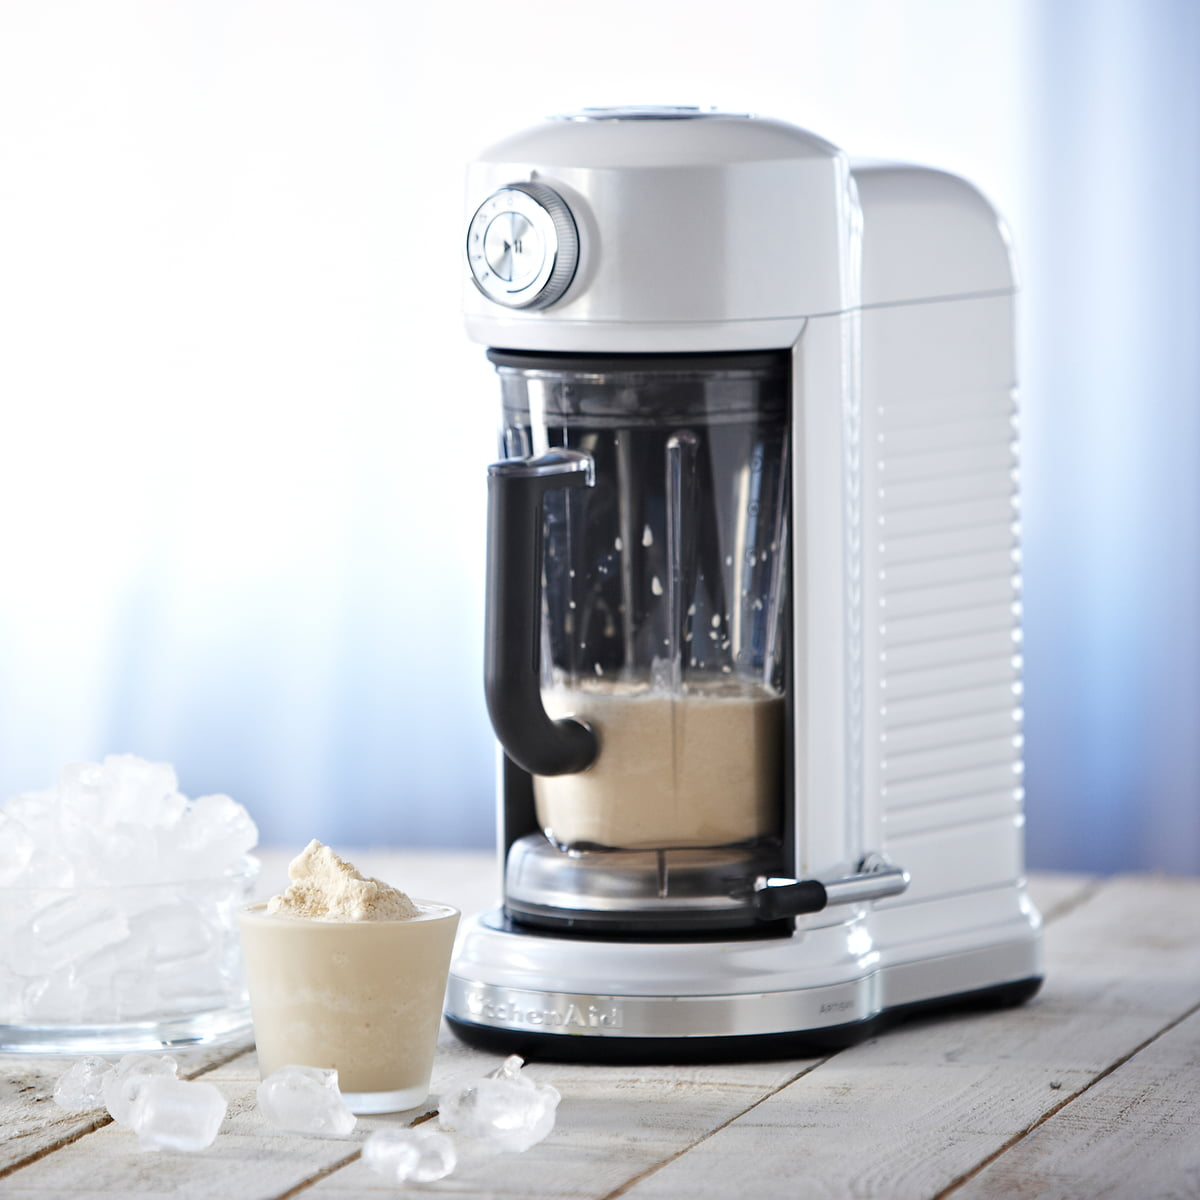 Kitchenaid Artisan Magnetic Drive Blender Creme